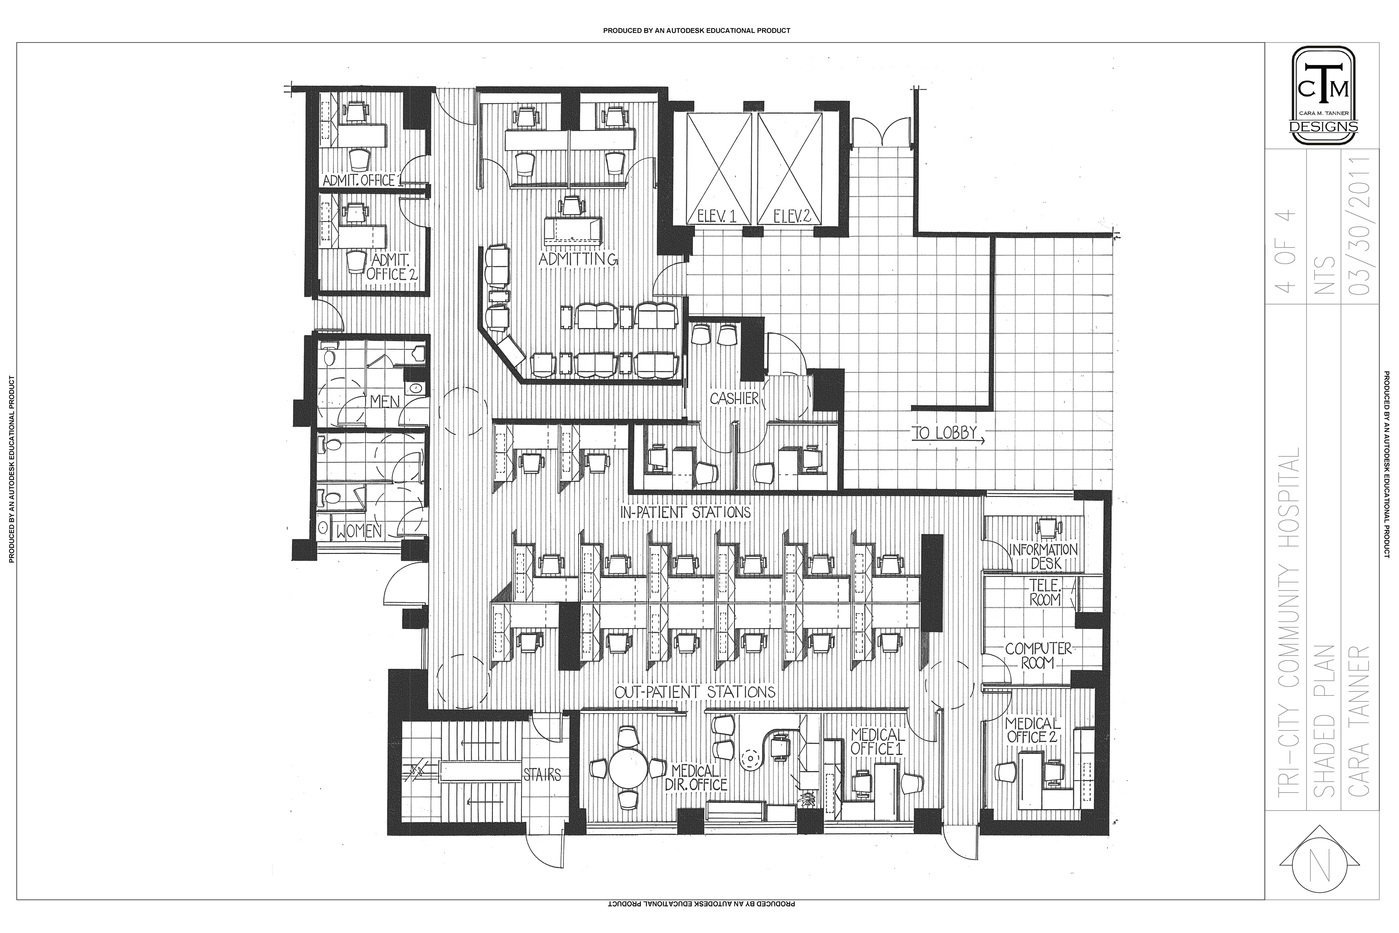 Tri City Community Hospital Floor Plans By Cara Tanner At Coroflot Com